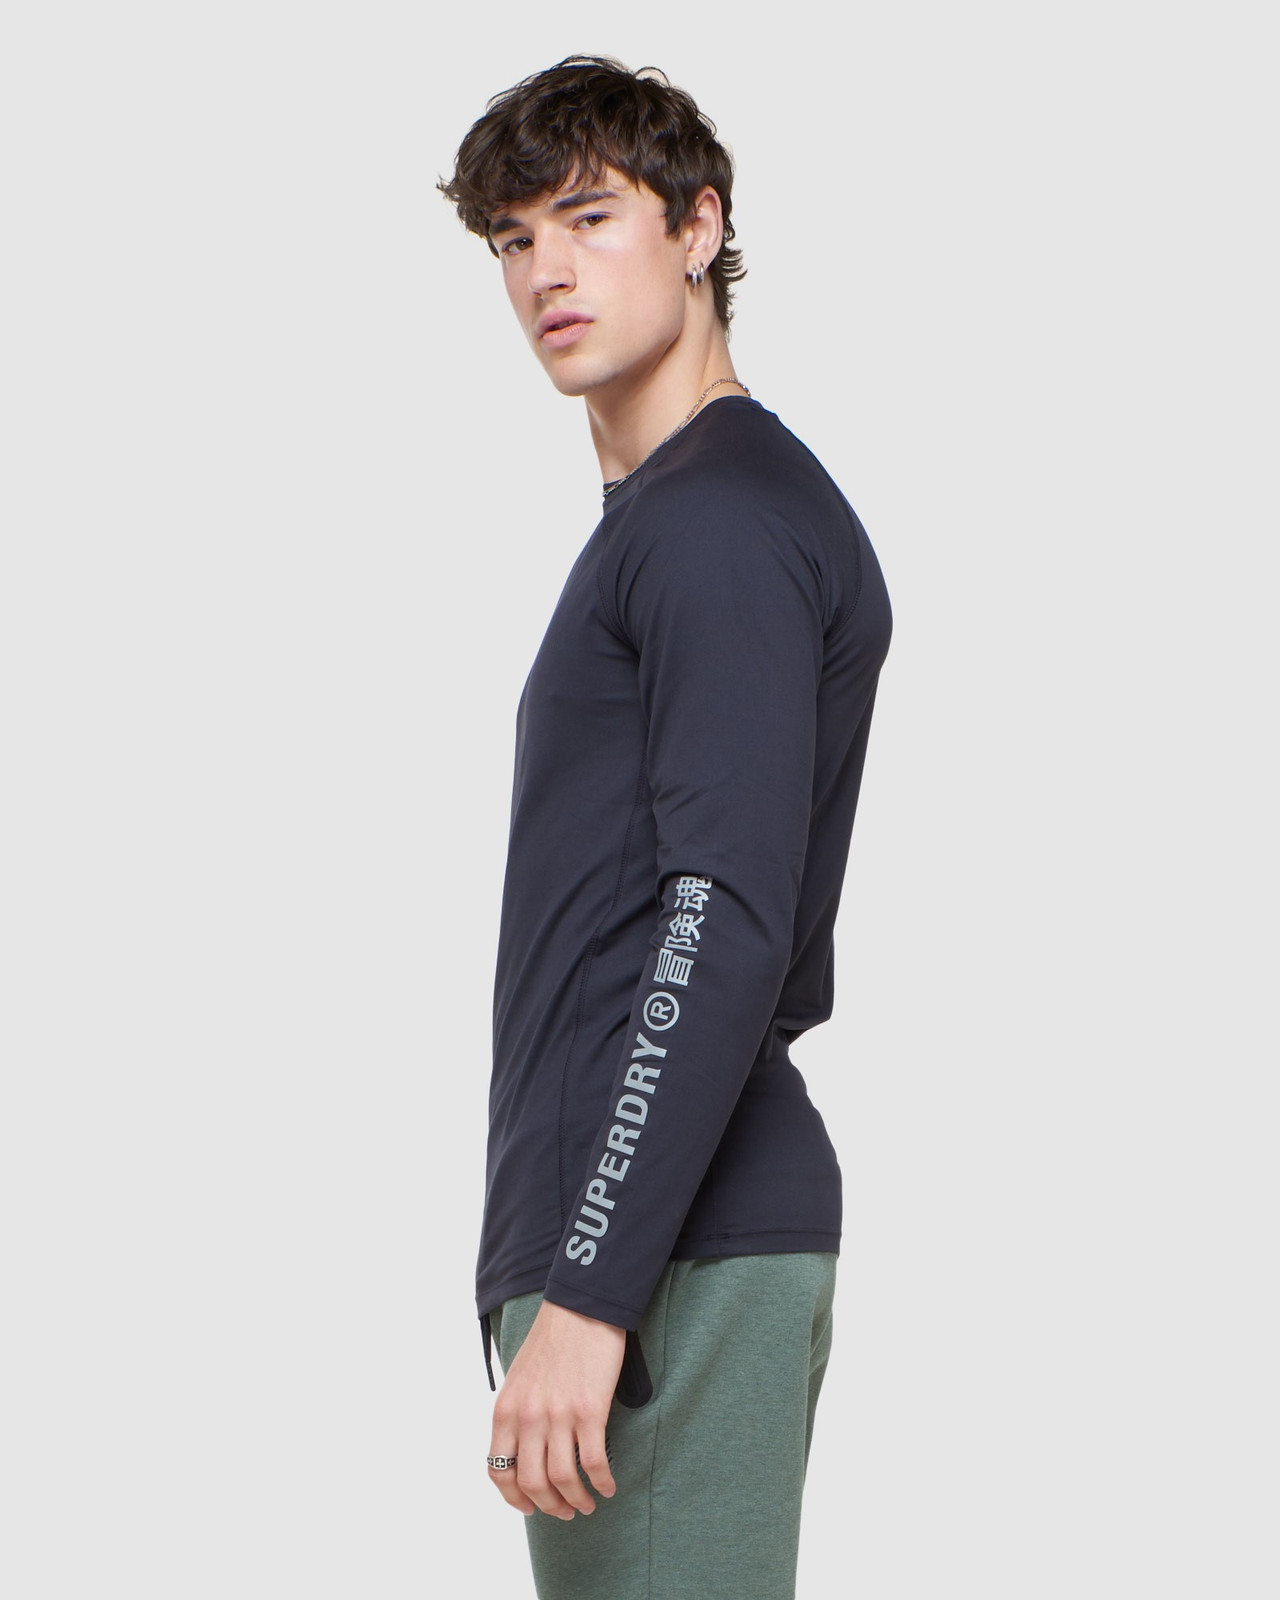 Superdry Mens CREW NECK CARBON BASE LAYER Black Long Sleeve Top 3